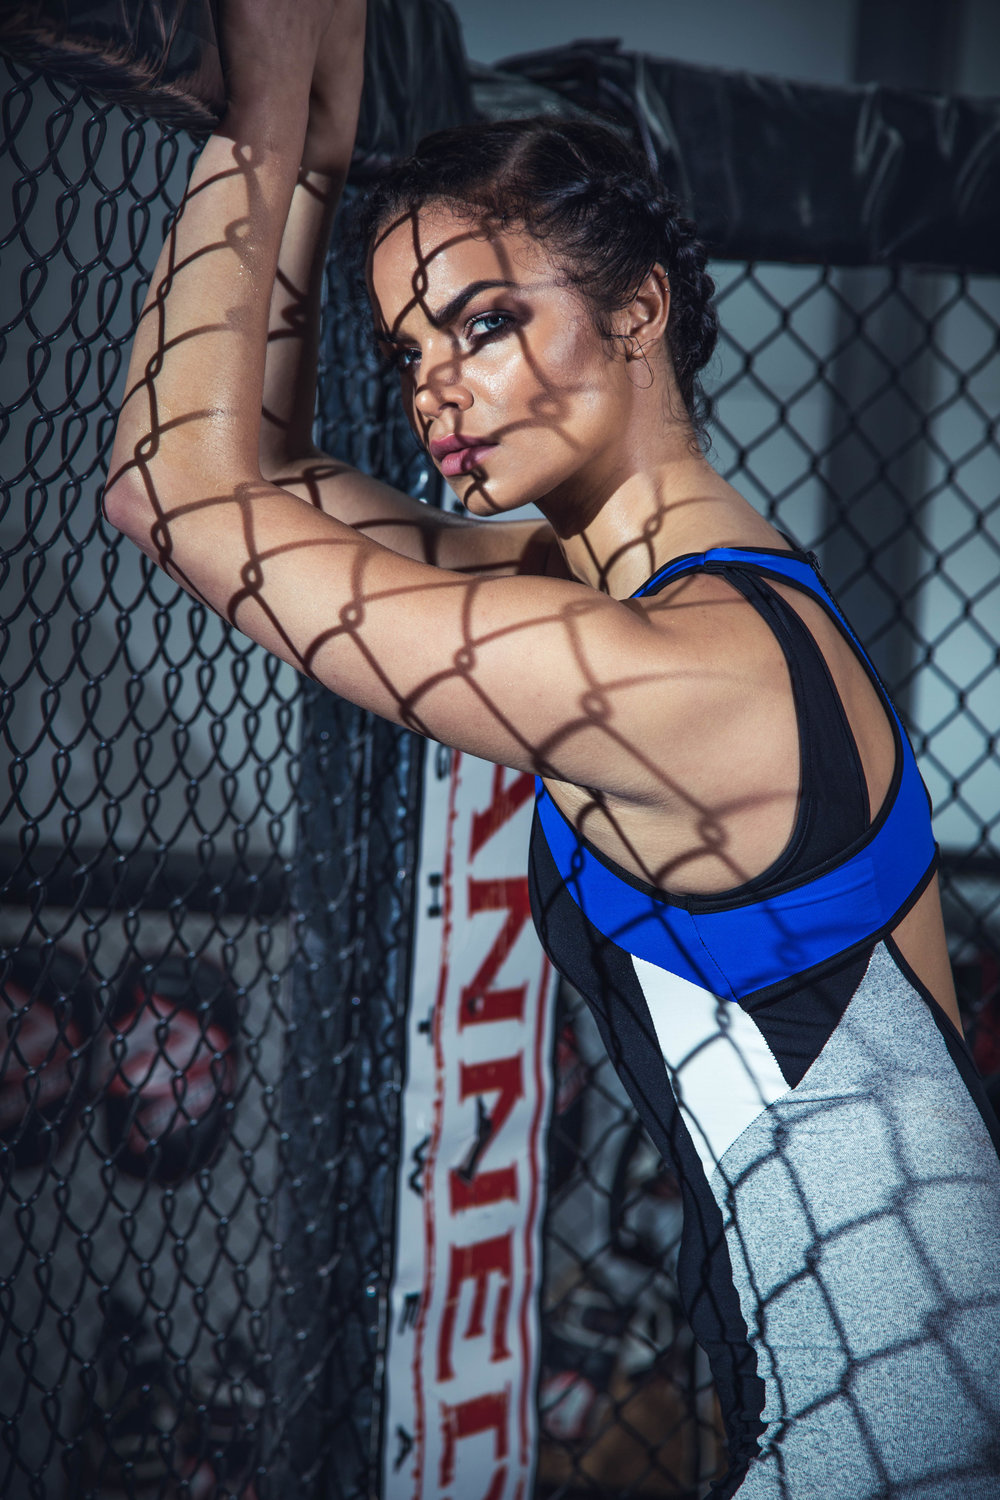 Octagon cage mma phptographer